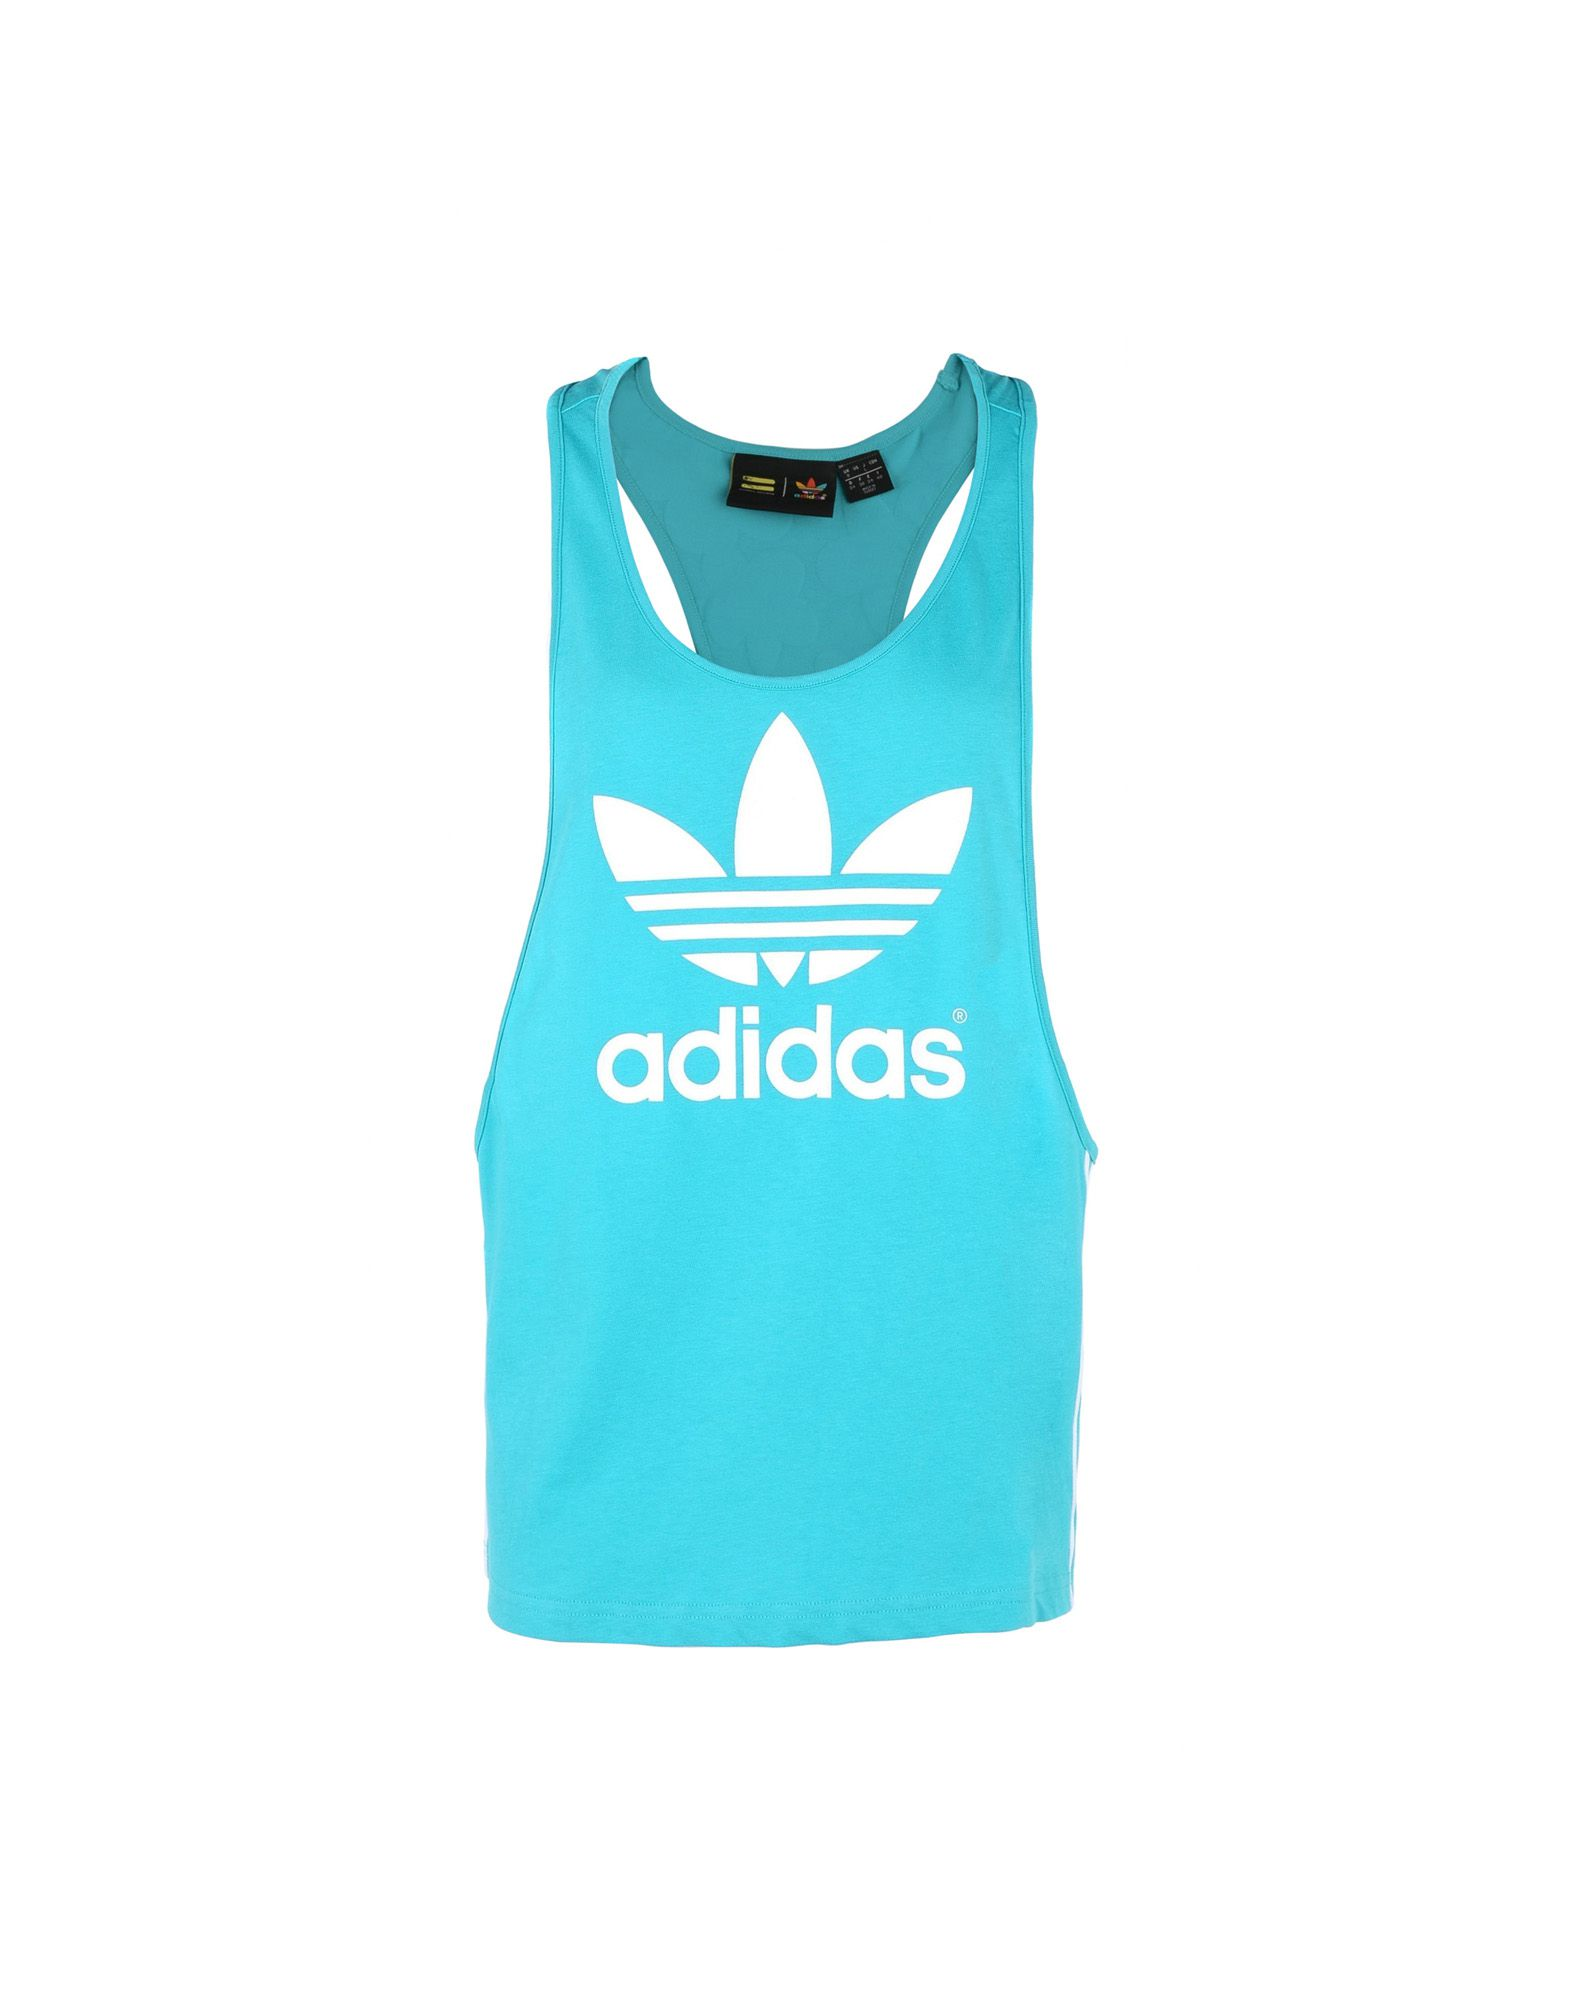 ADIDAS ORIGINALS by PHARRELL WILLIAMS Топ без рукавов демисезонные ботинки ma595j4u075 adidas originals pharrell williams